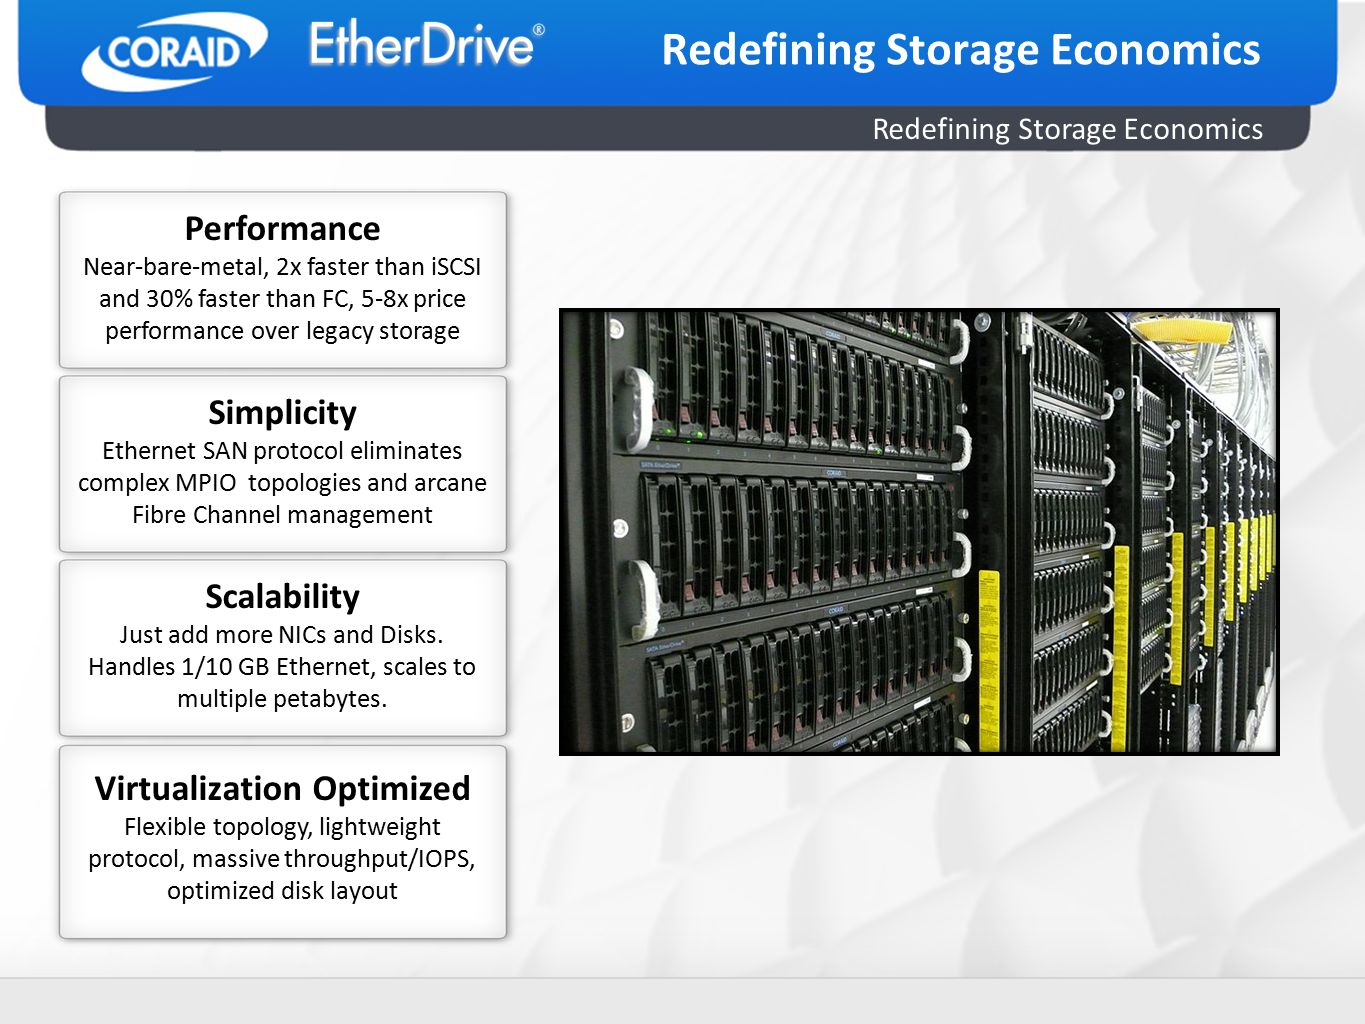 Redefining Storage Economics Performance Near-bare-metal, 2x faster than iSCSI and 30% faster than FC, 5-8x price performance over legacy storage Simplicity Ethernet SAN protocol eliminates complex MPIO topologies and arcane Fibre Channel management Scalability Just add more NICs and Disks.